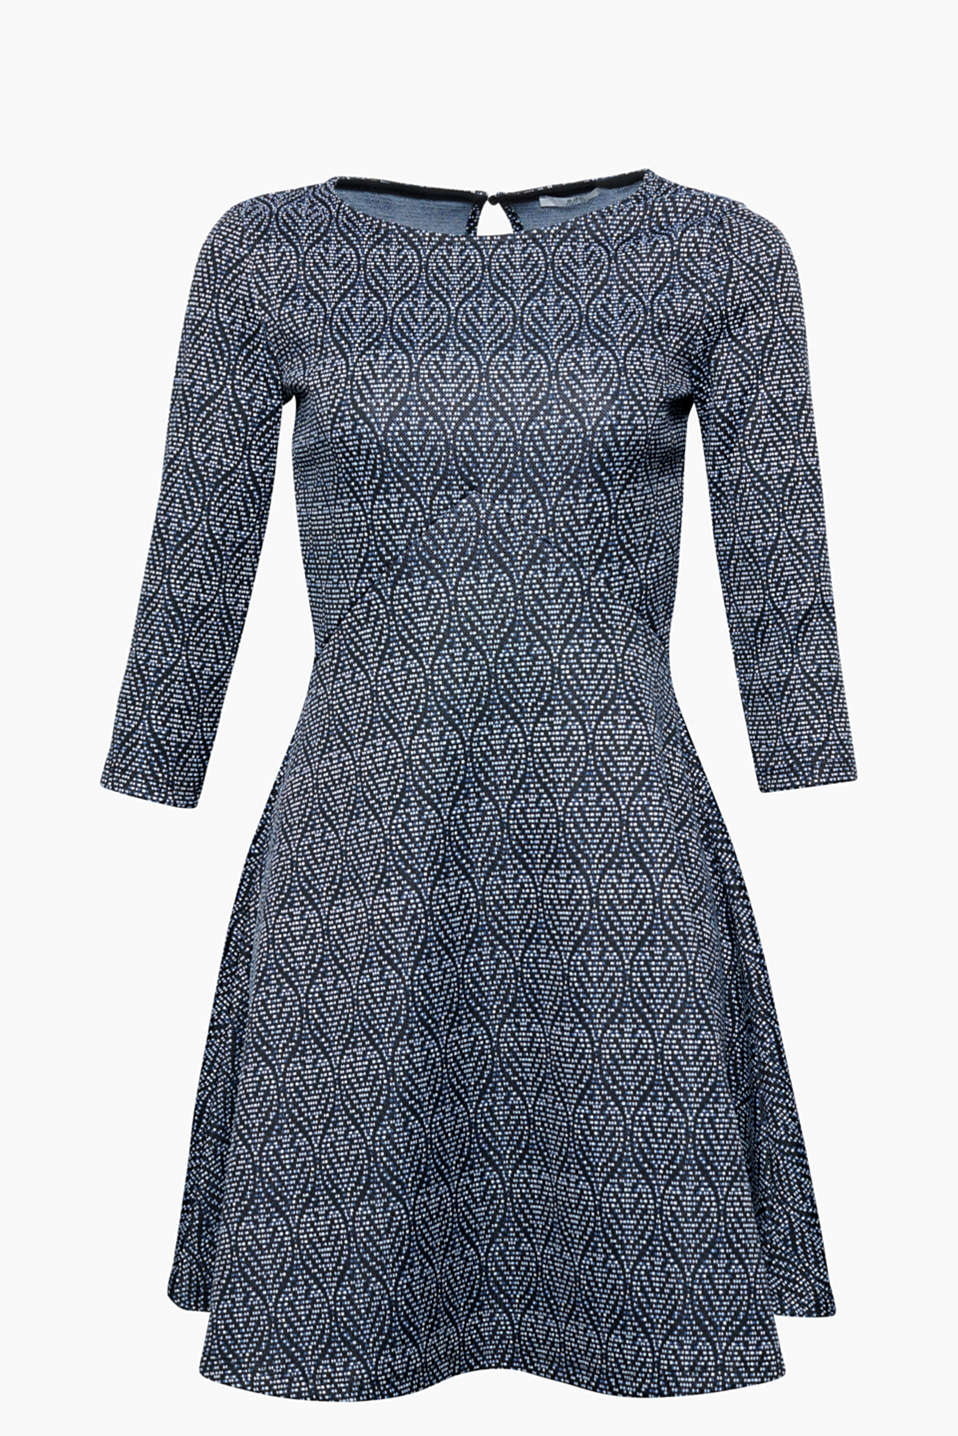 We adore the new, comfortable dress designs! Printed retro-look dress made of thick jersey with a percentage of stretch